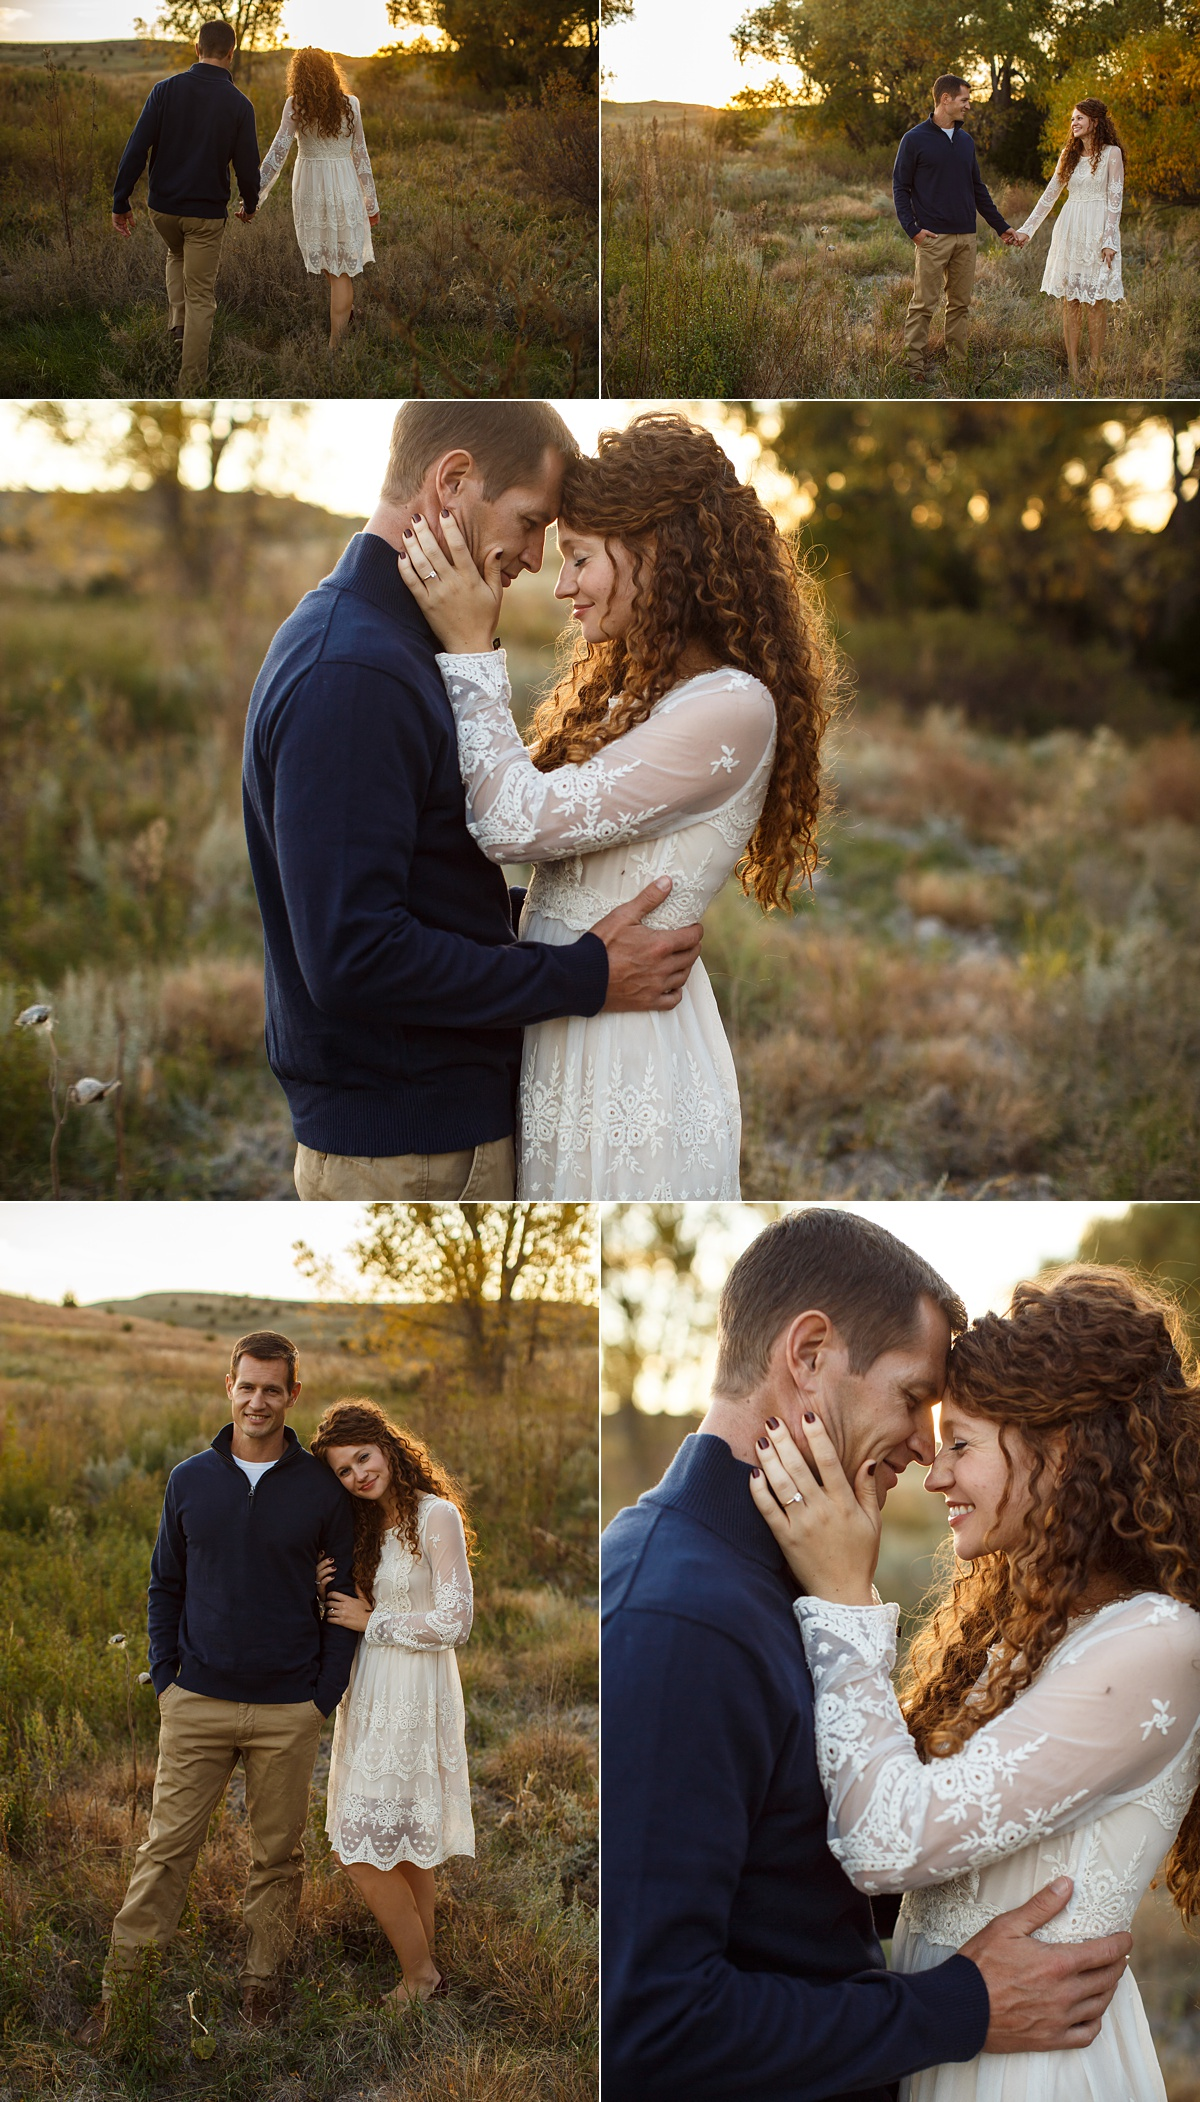 Lake_Wilson_Engagement_Session_0005.JPG